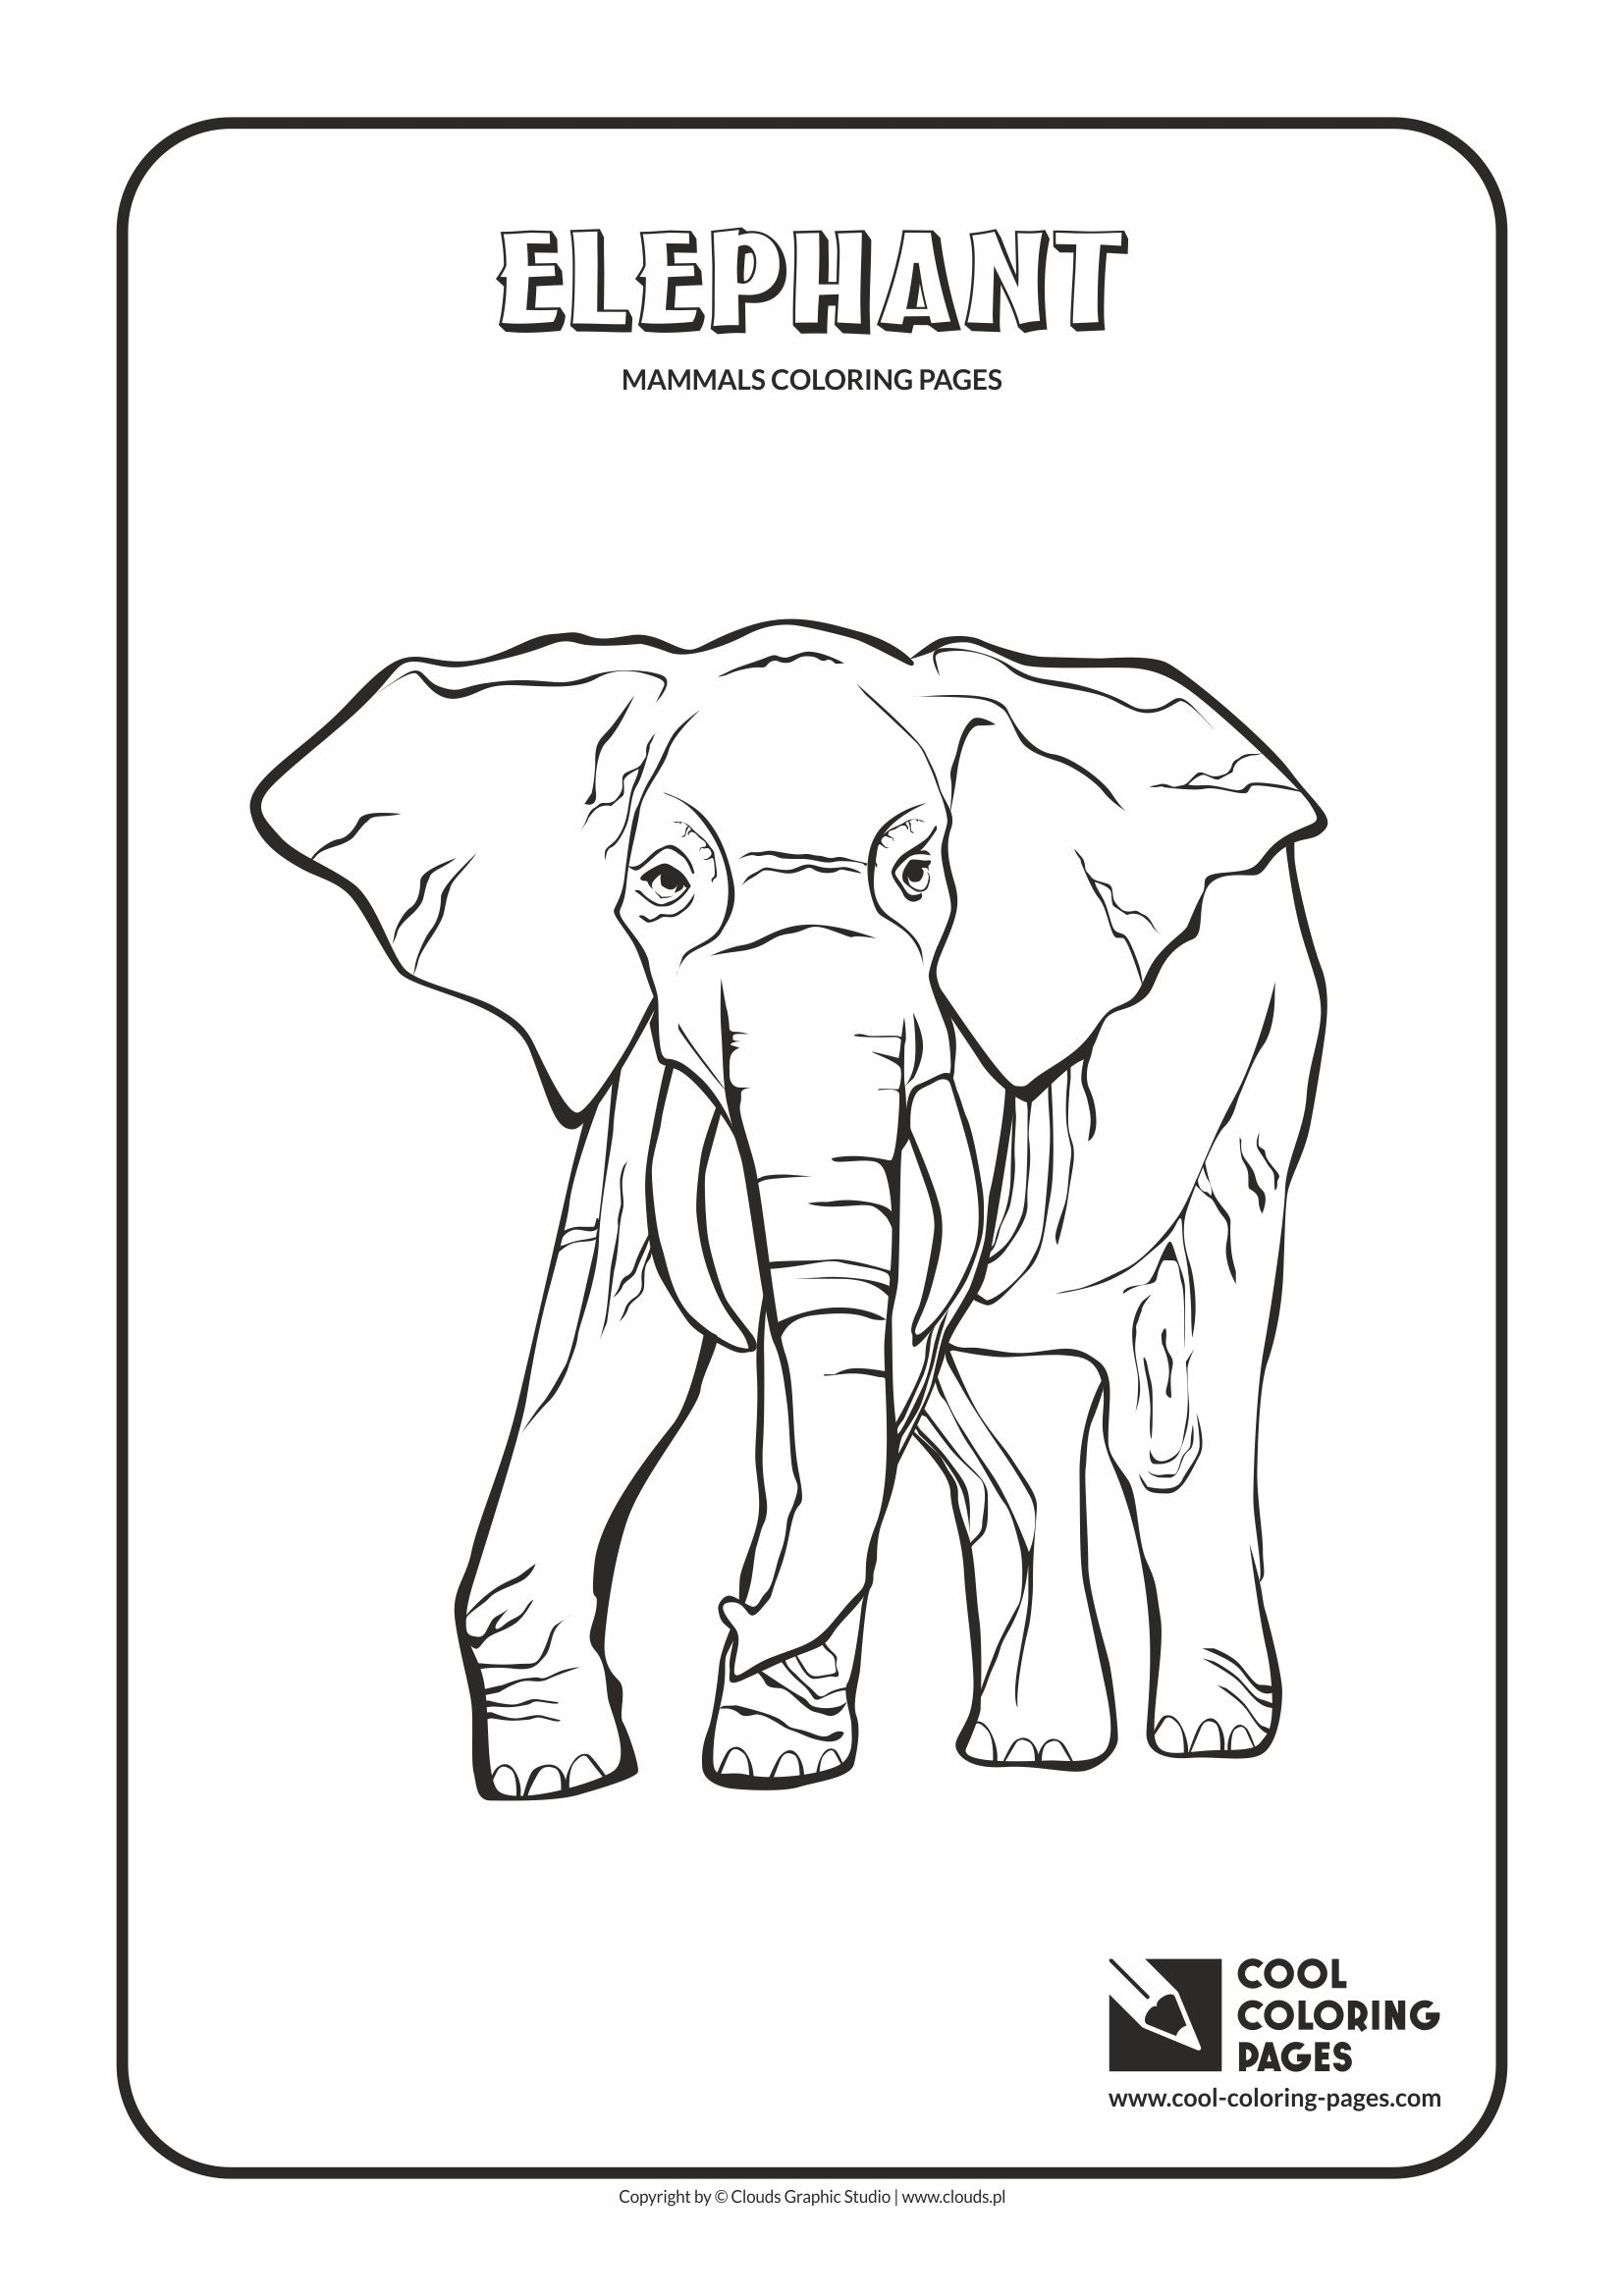 animals coloring pages cool coloring pages